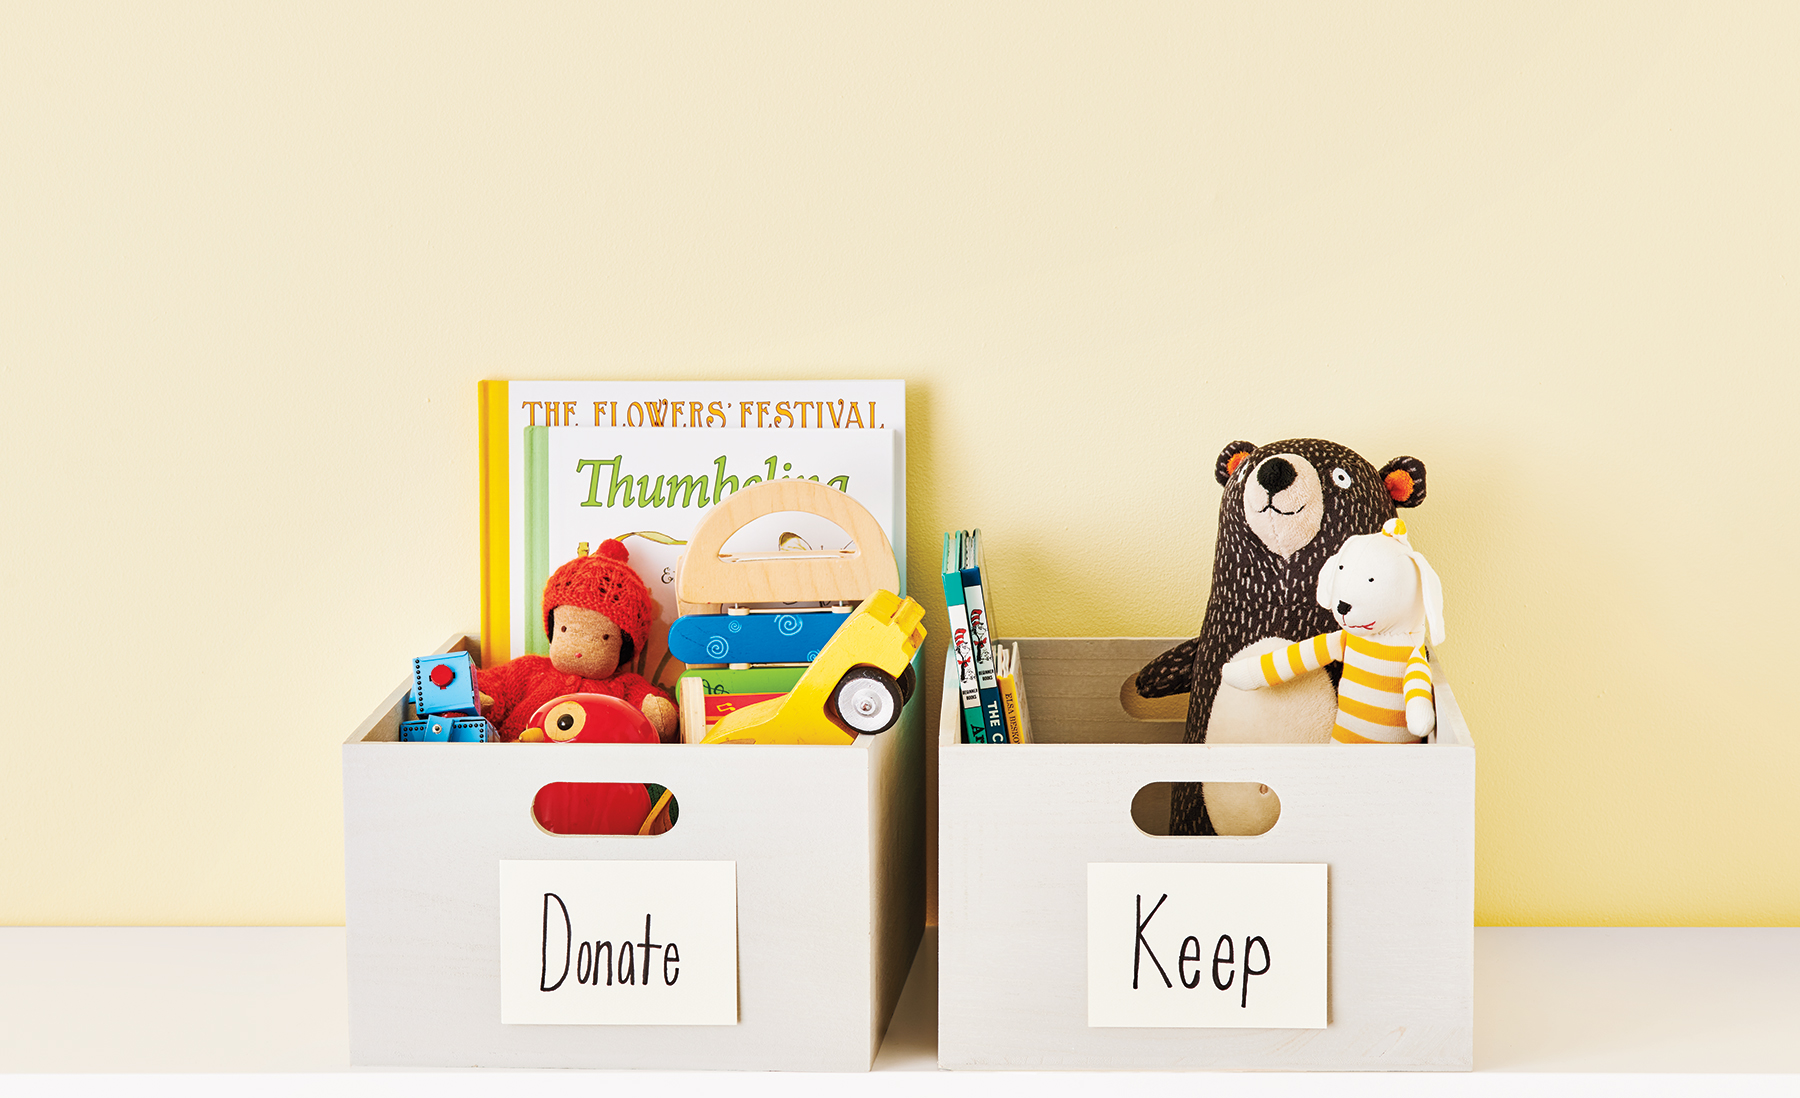 Donate and Keep toy bins